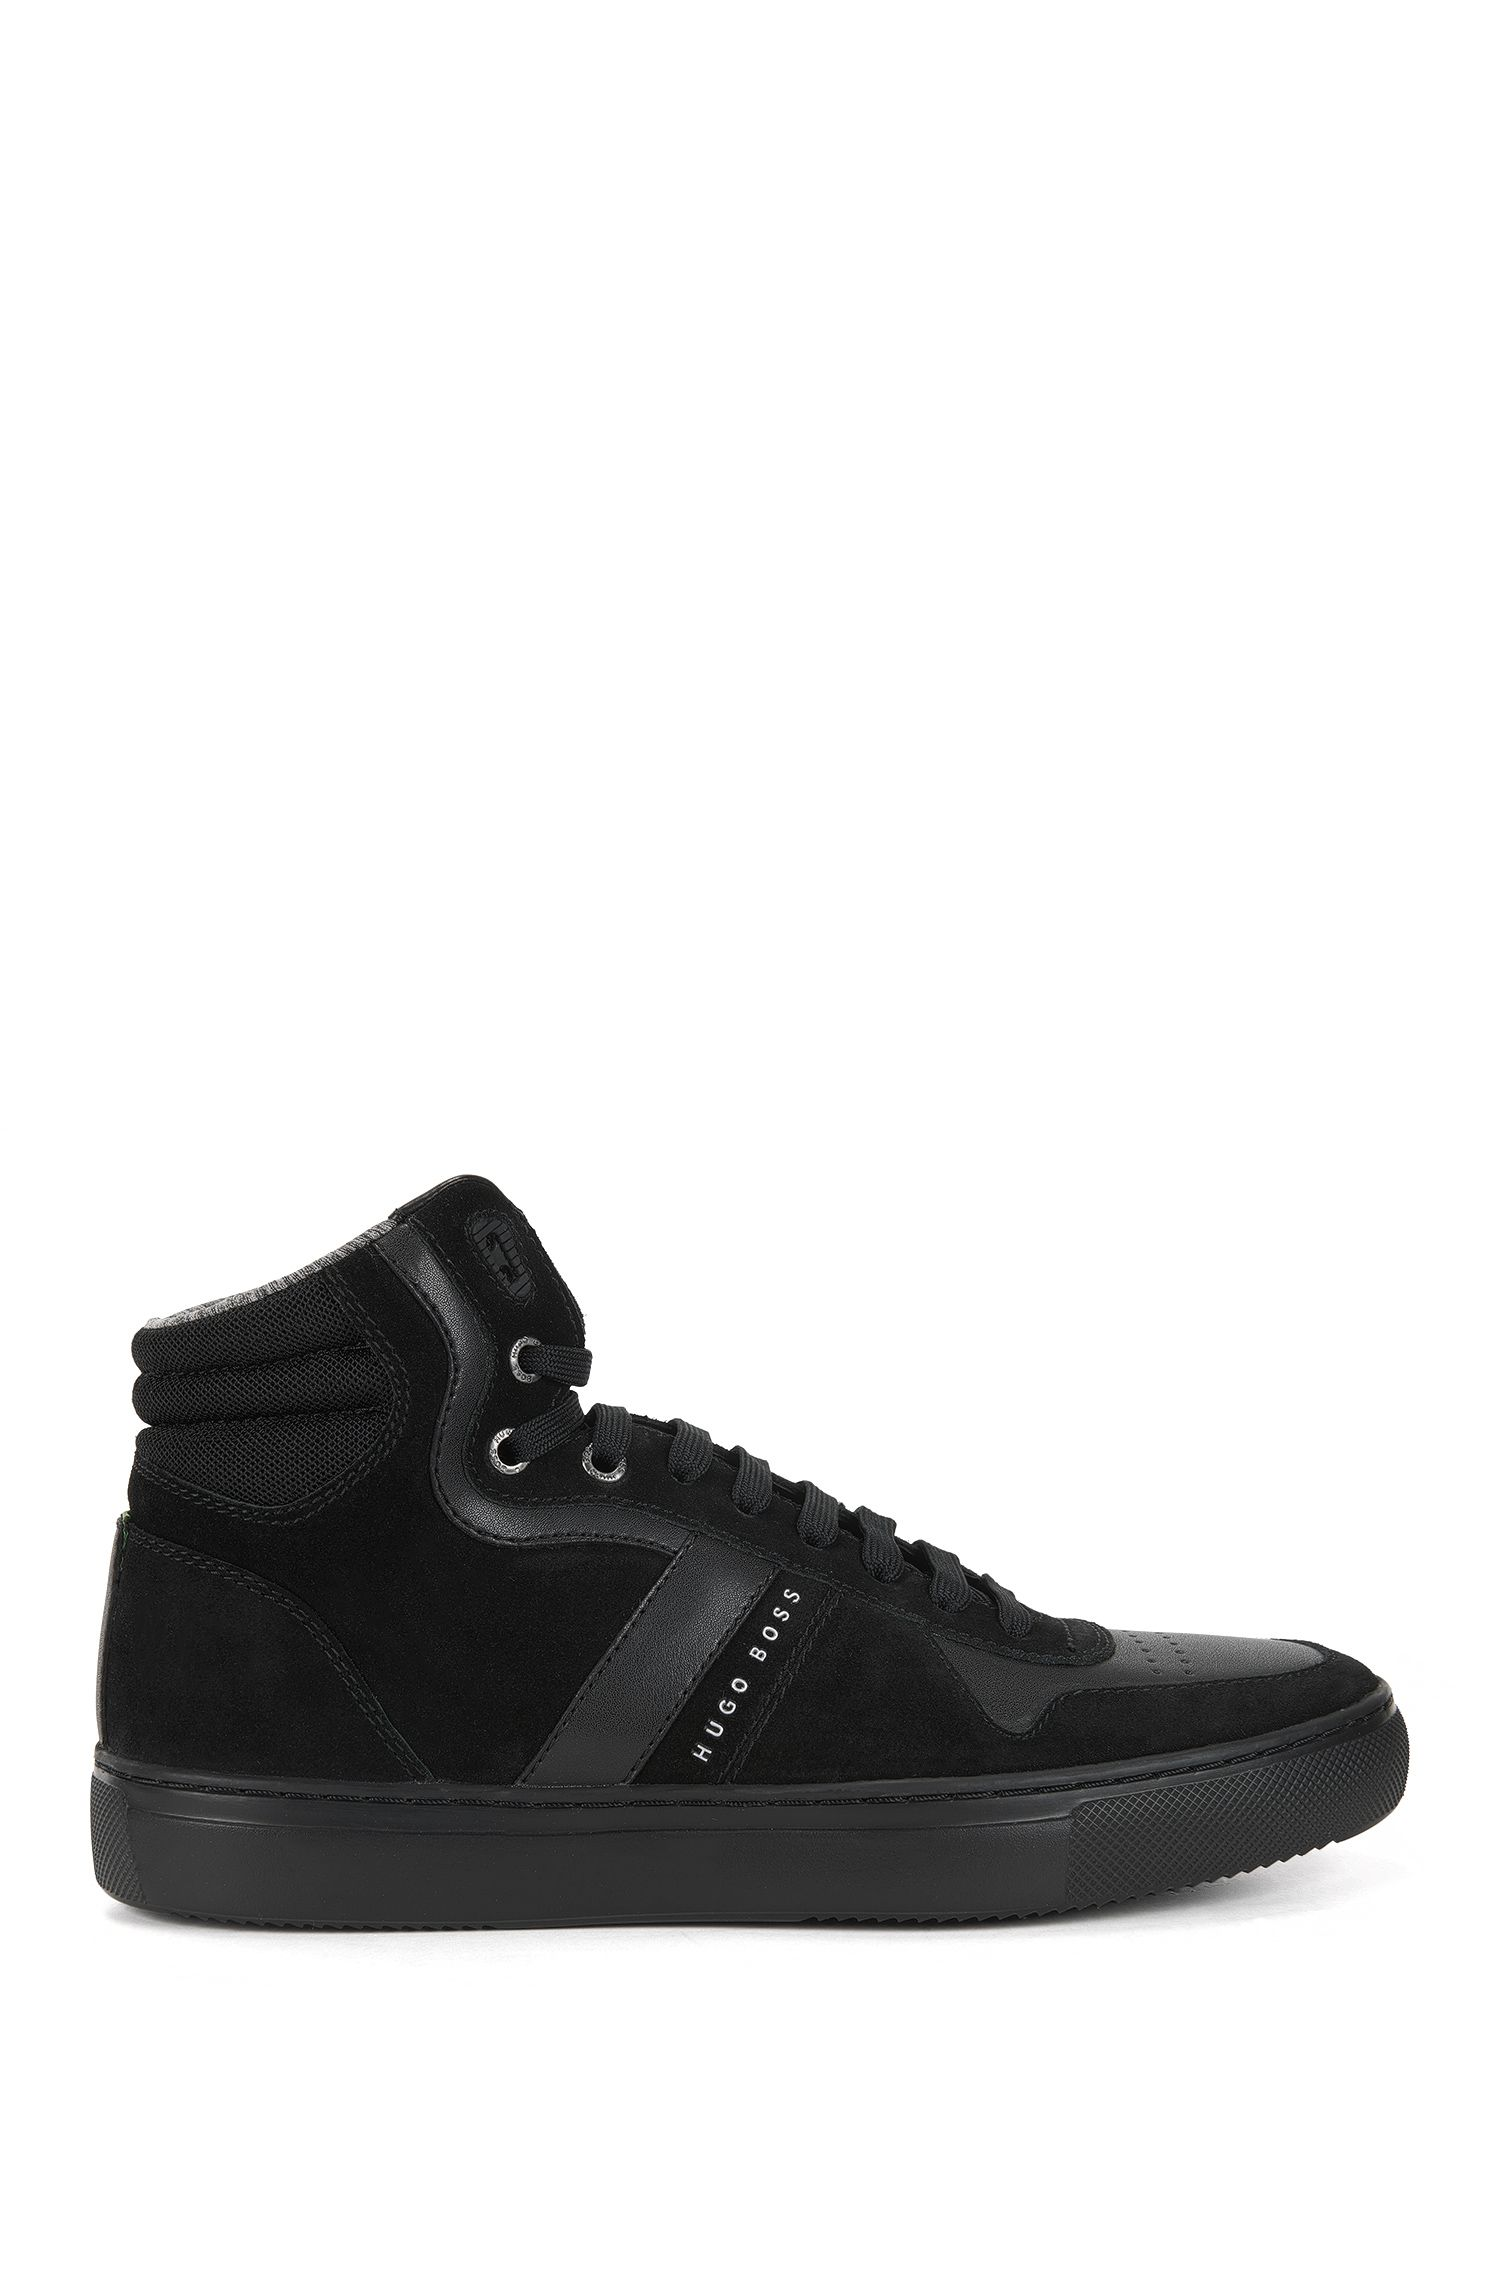 Leather & Suede High Top Sneaker | Enlight Hito Sdmx